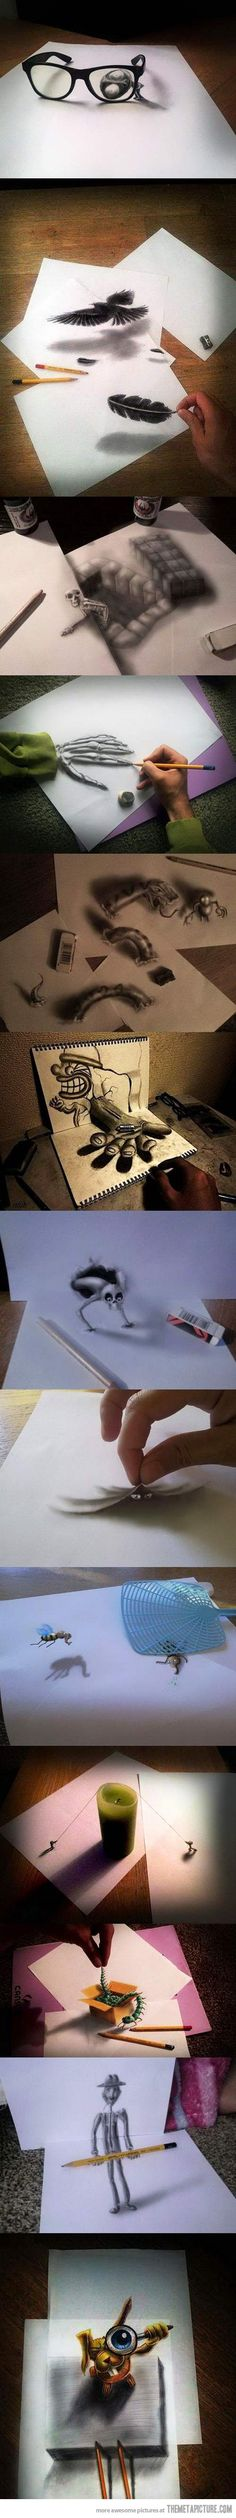 Awesome 3D Optical Illusions…These are crazy